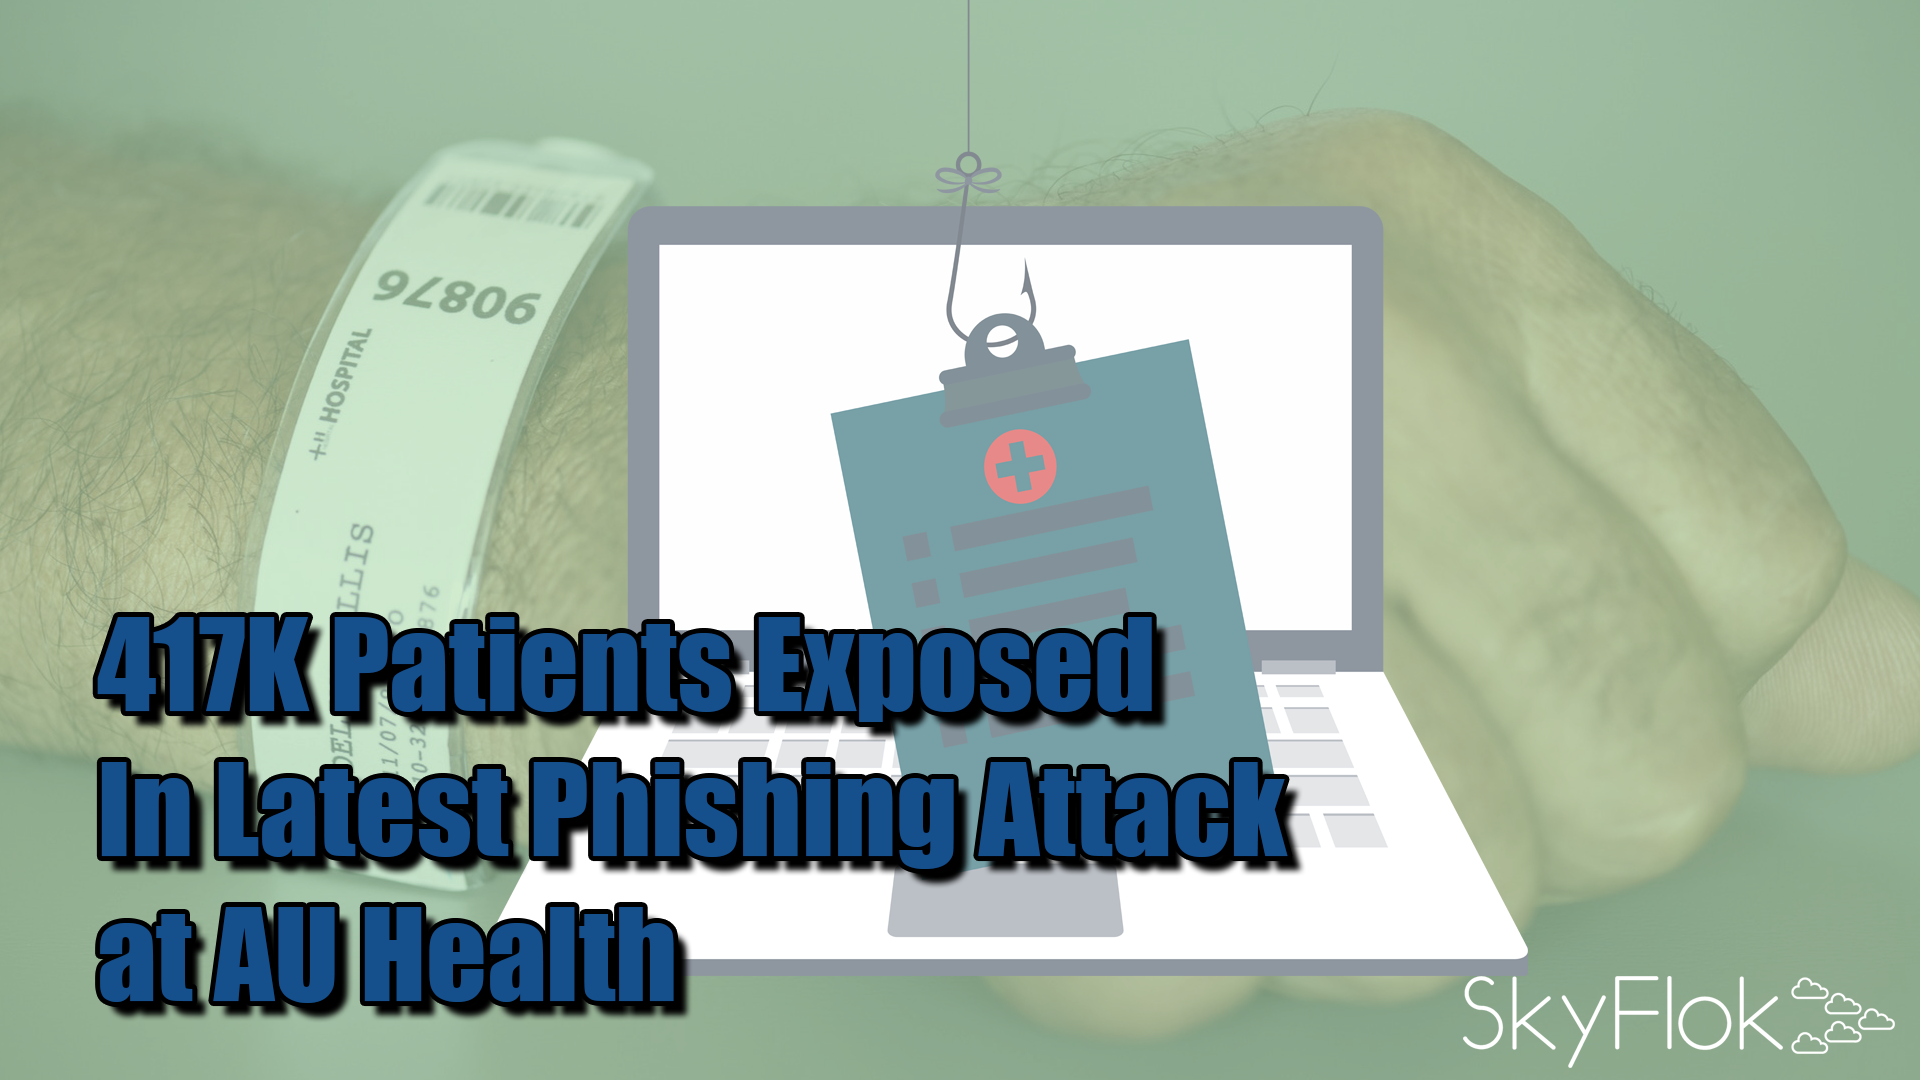 417K Patients Exposed In Latest Phishing Attack at AU Health